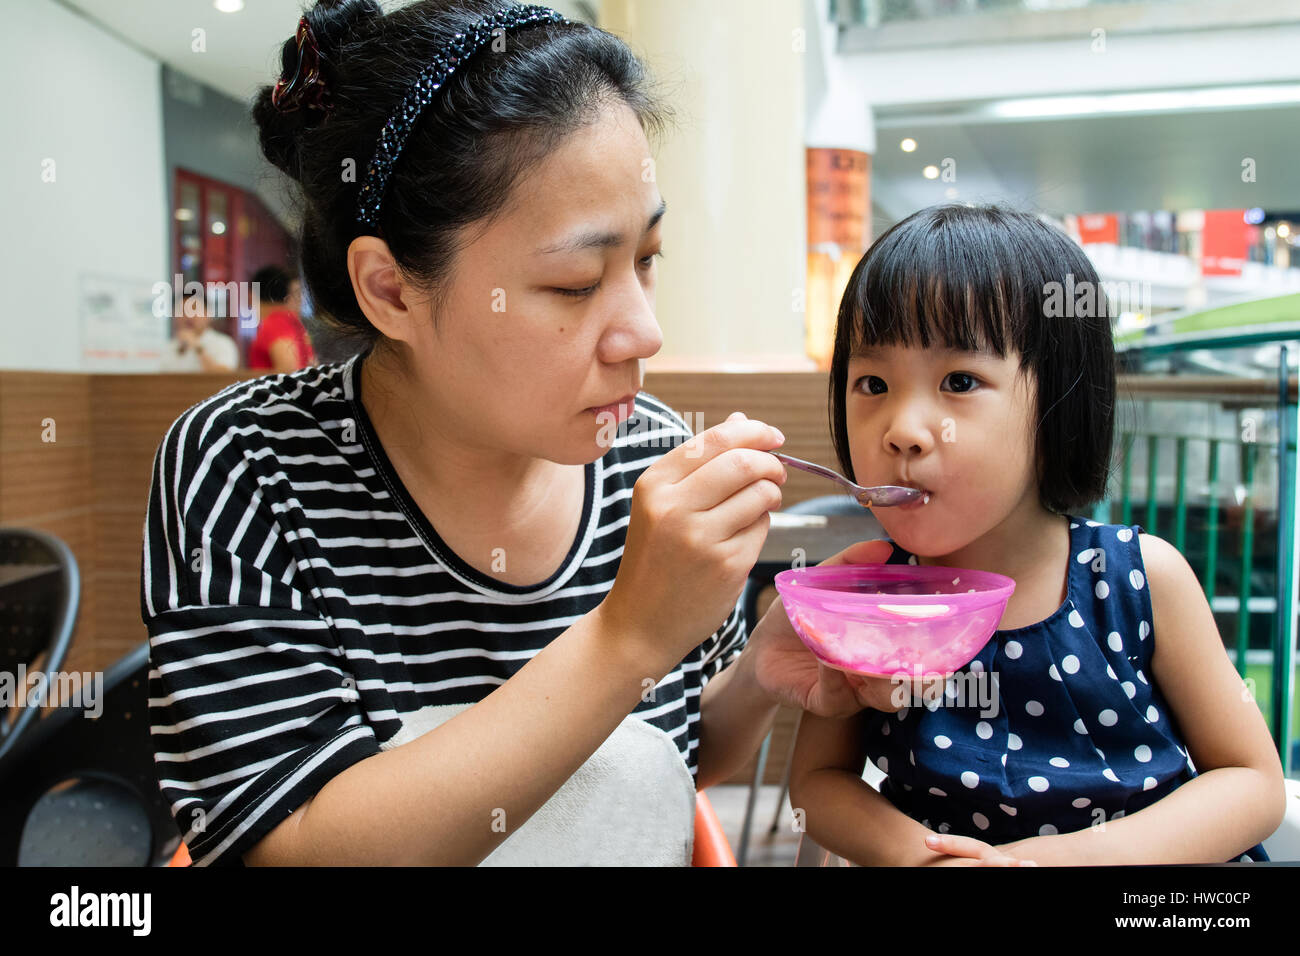 Asian Mother Feeding Her Daughter in Outdoor Cafe Photo Stock